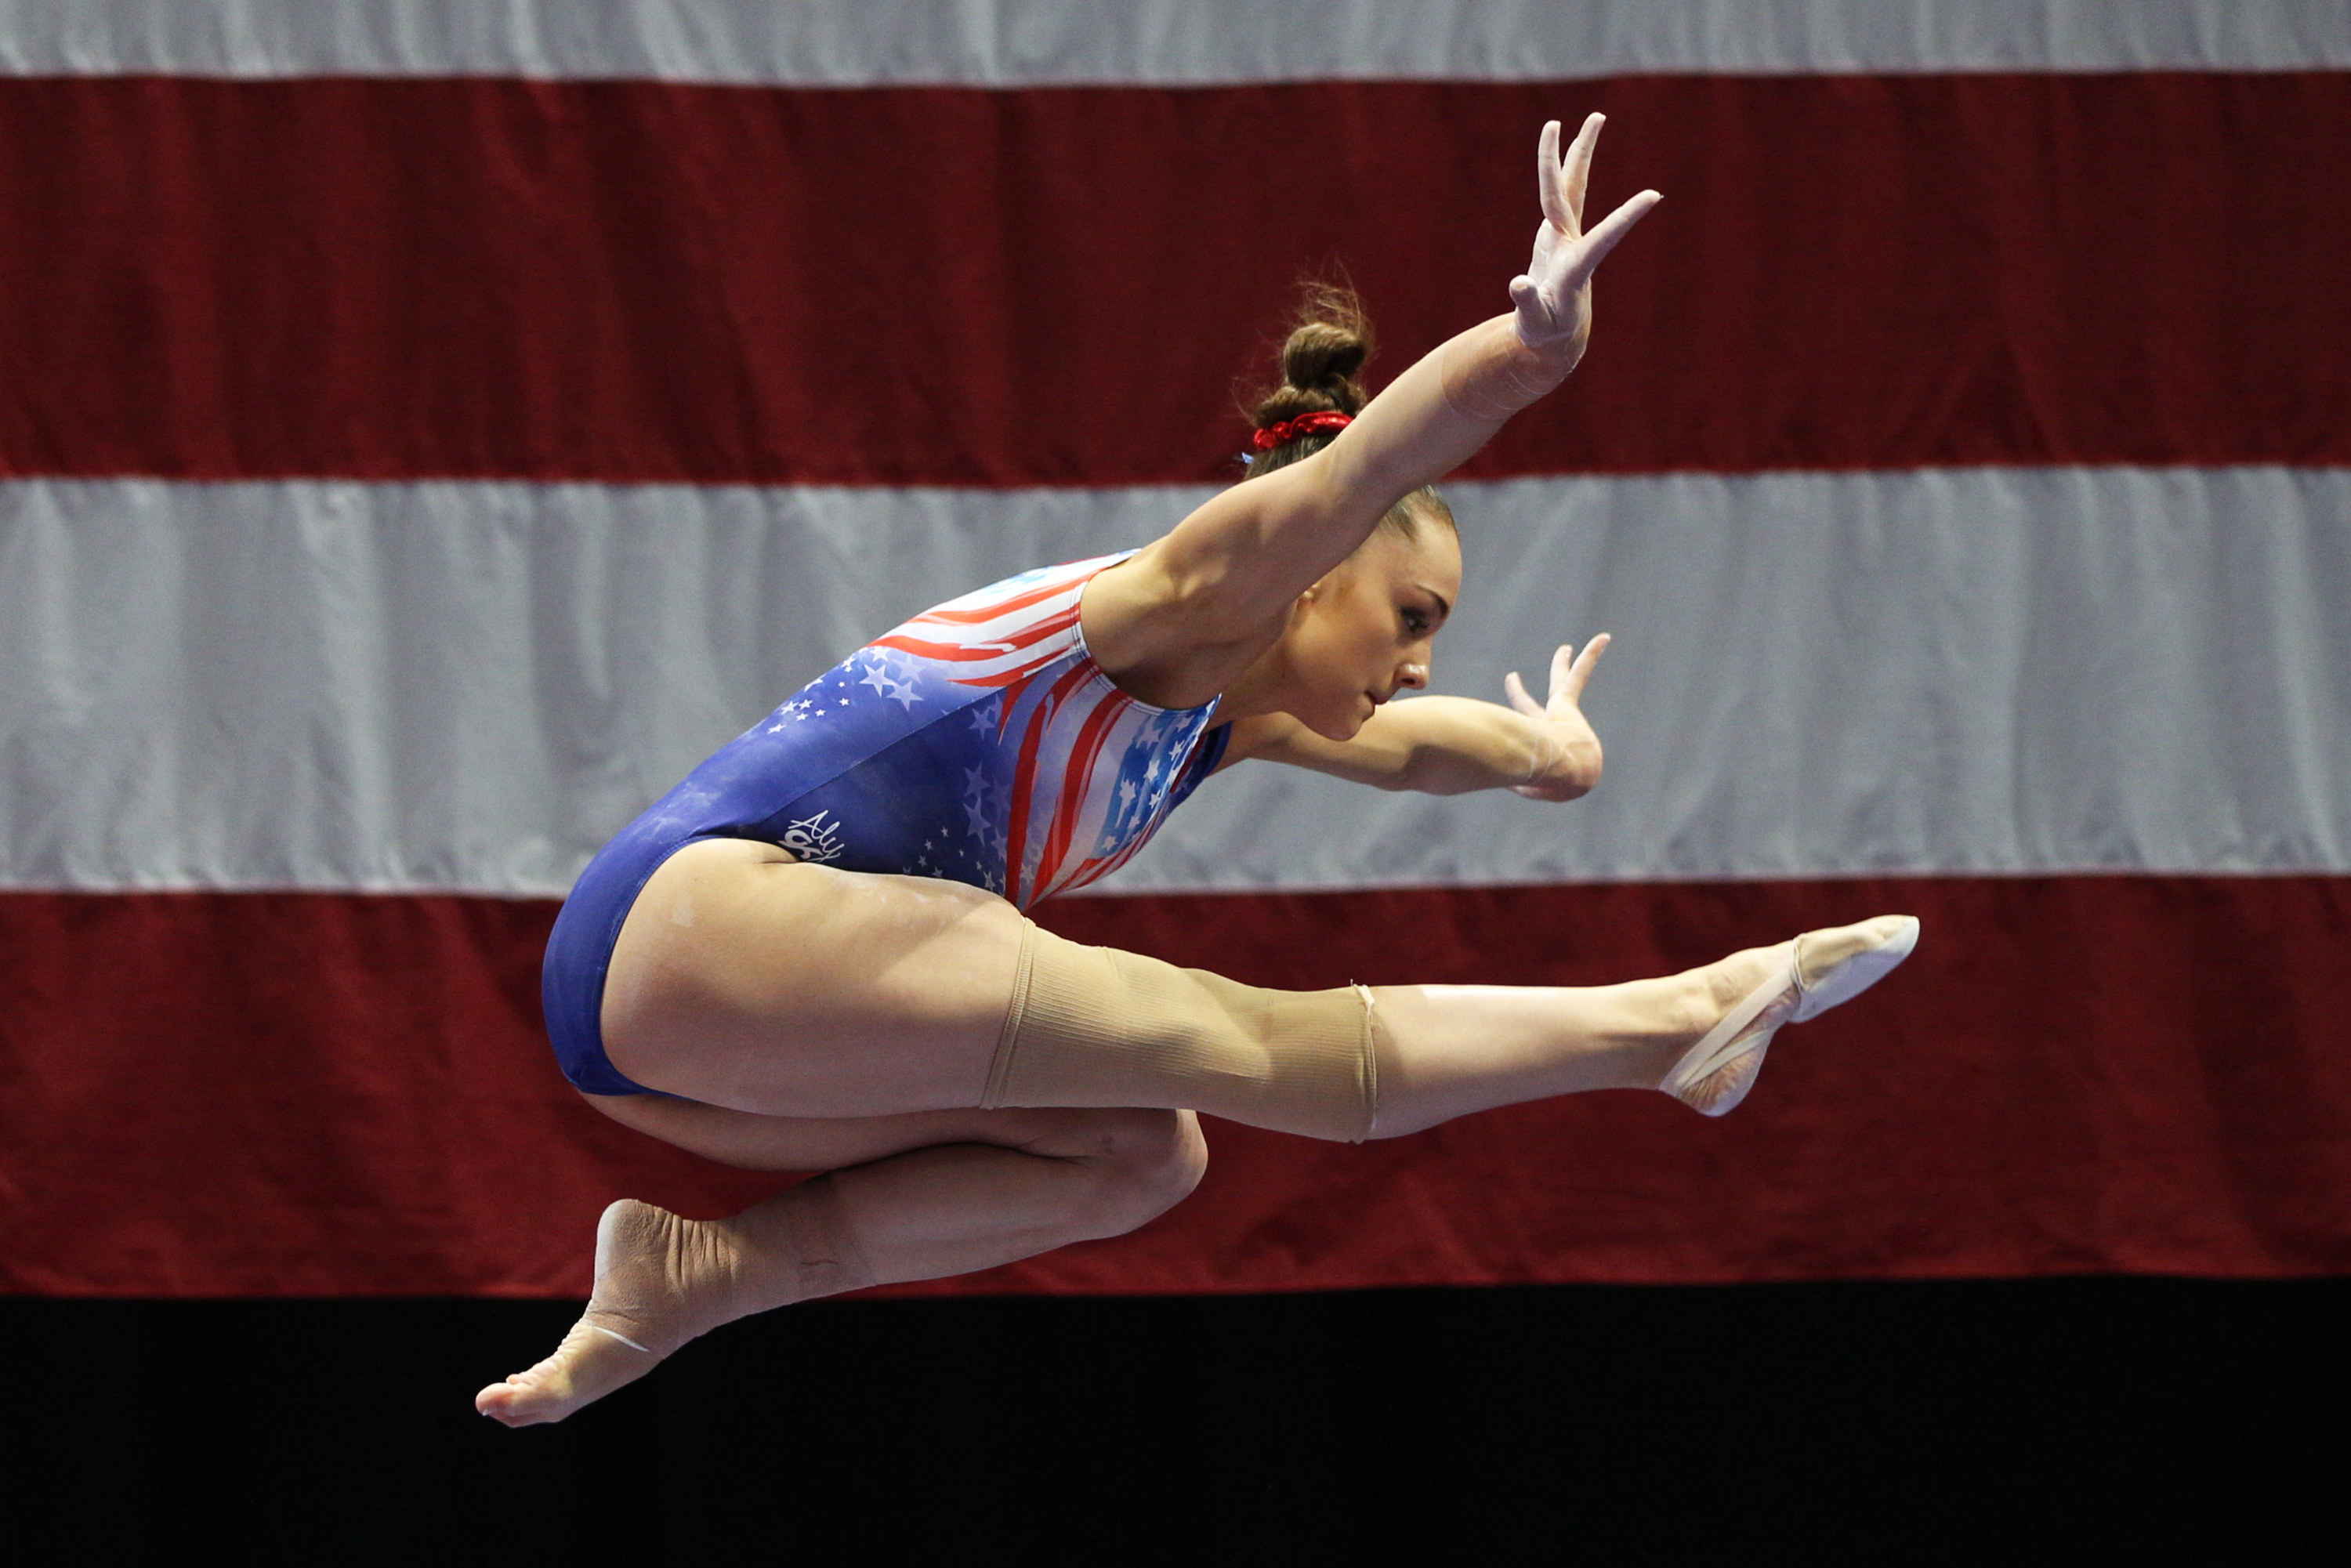 A gymnast in the air.